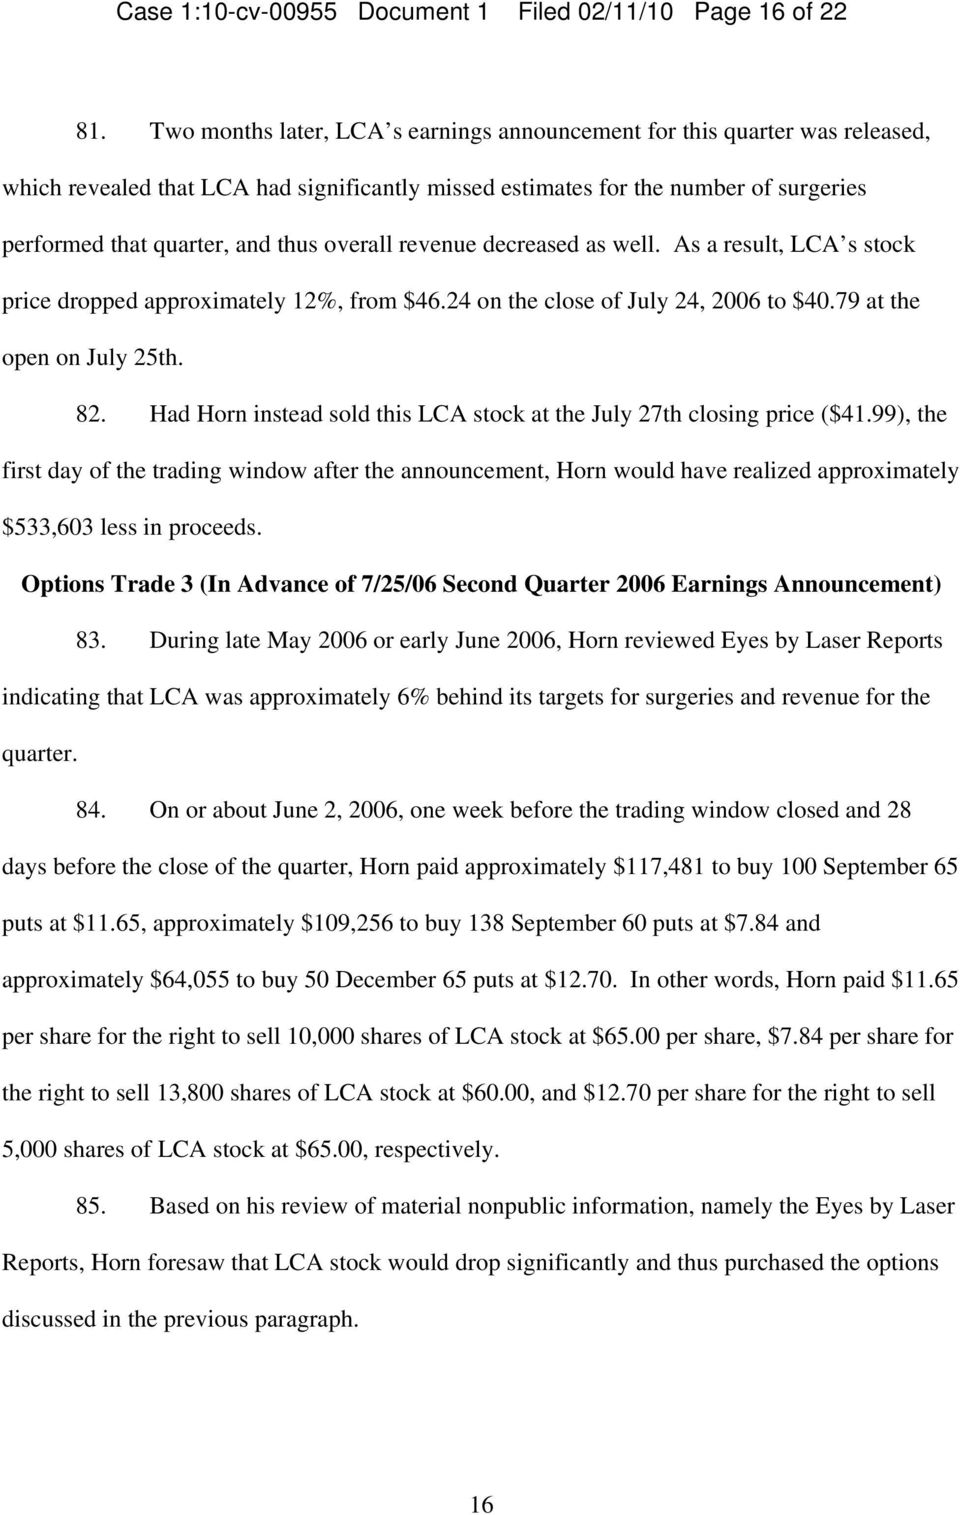 overall revenue decreased as well. As a result, LCA s stock price dropped approximately 12%, from $46.24 on the close of July 24, 2006 to $40.79 at the open on July 25th. 82.